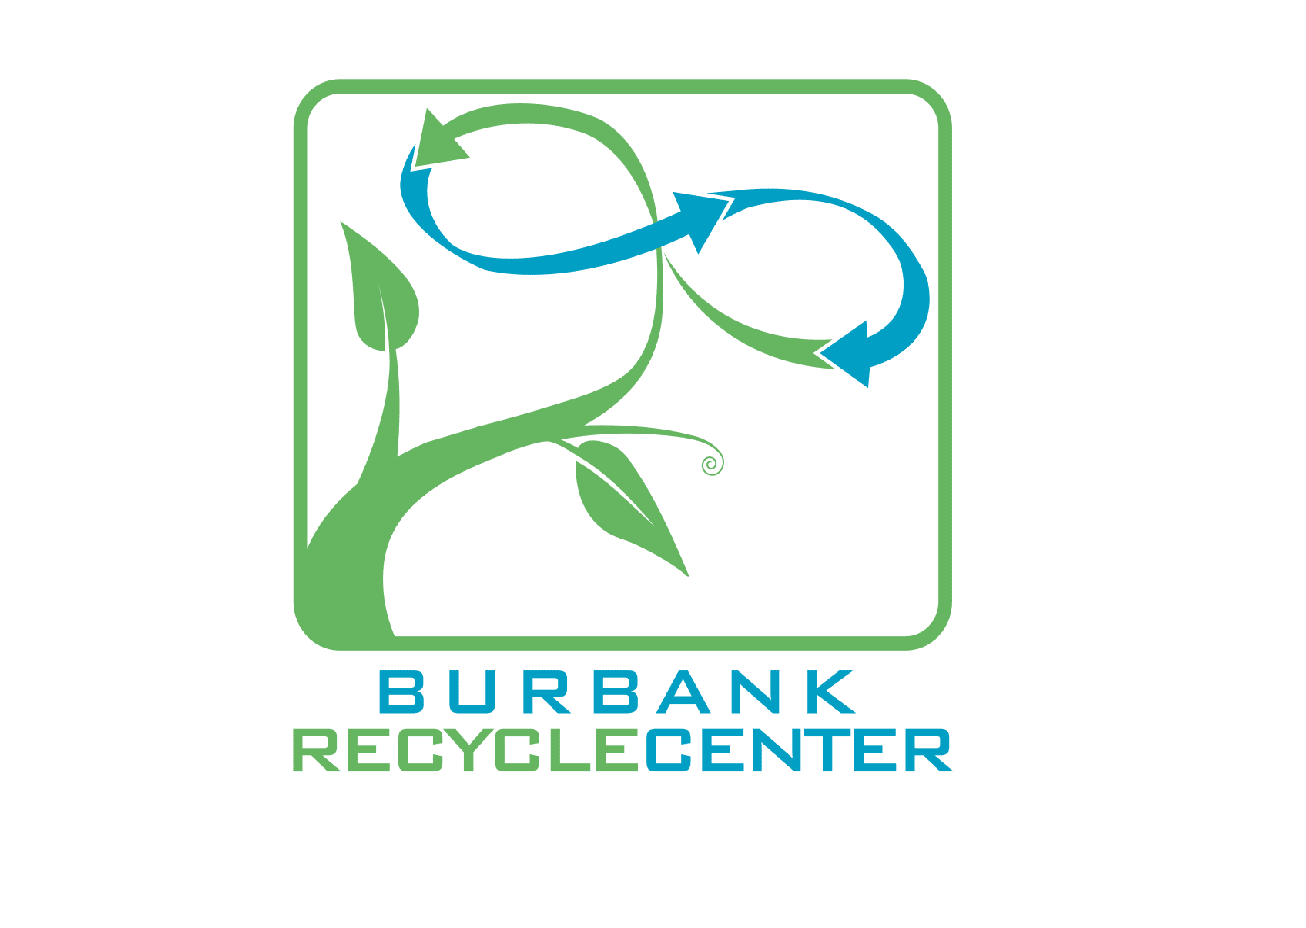 Burbank Recycling Center >> Recycling Program Aims to Influence Others About Reducing Waste - Waste Advantage Magazine